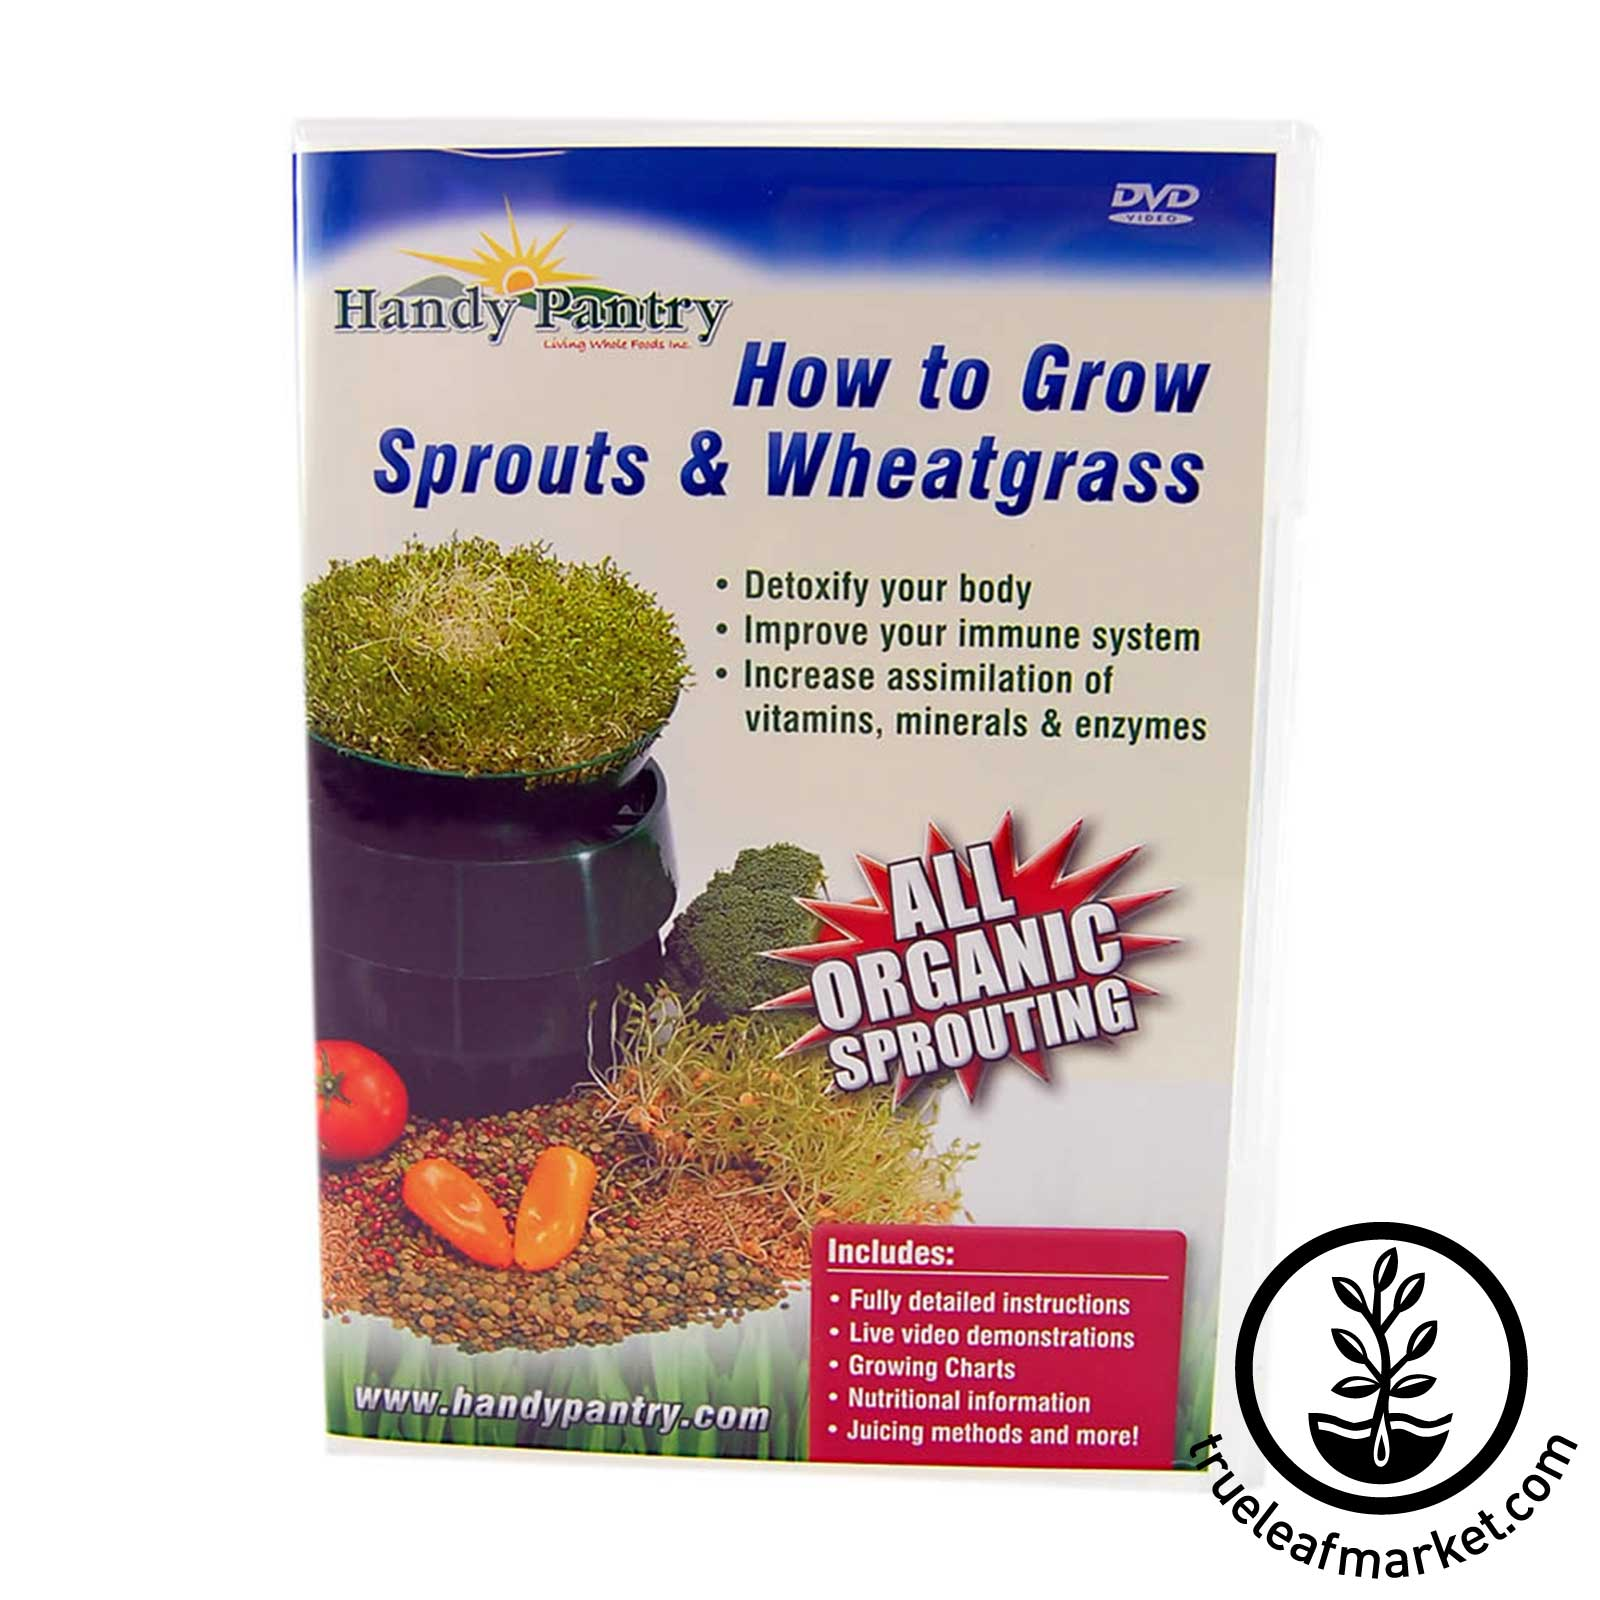 How to Grow Sprouts and Wheatgrass DVD